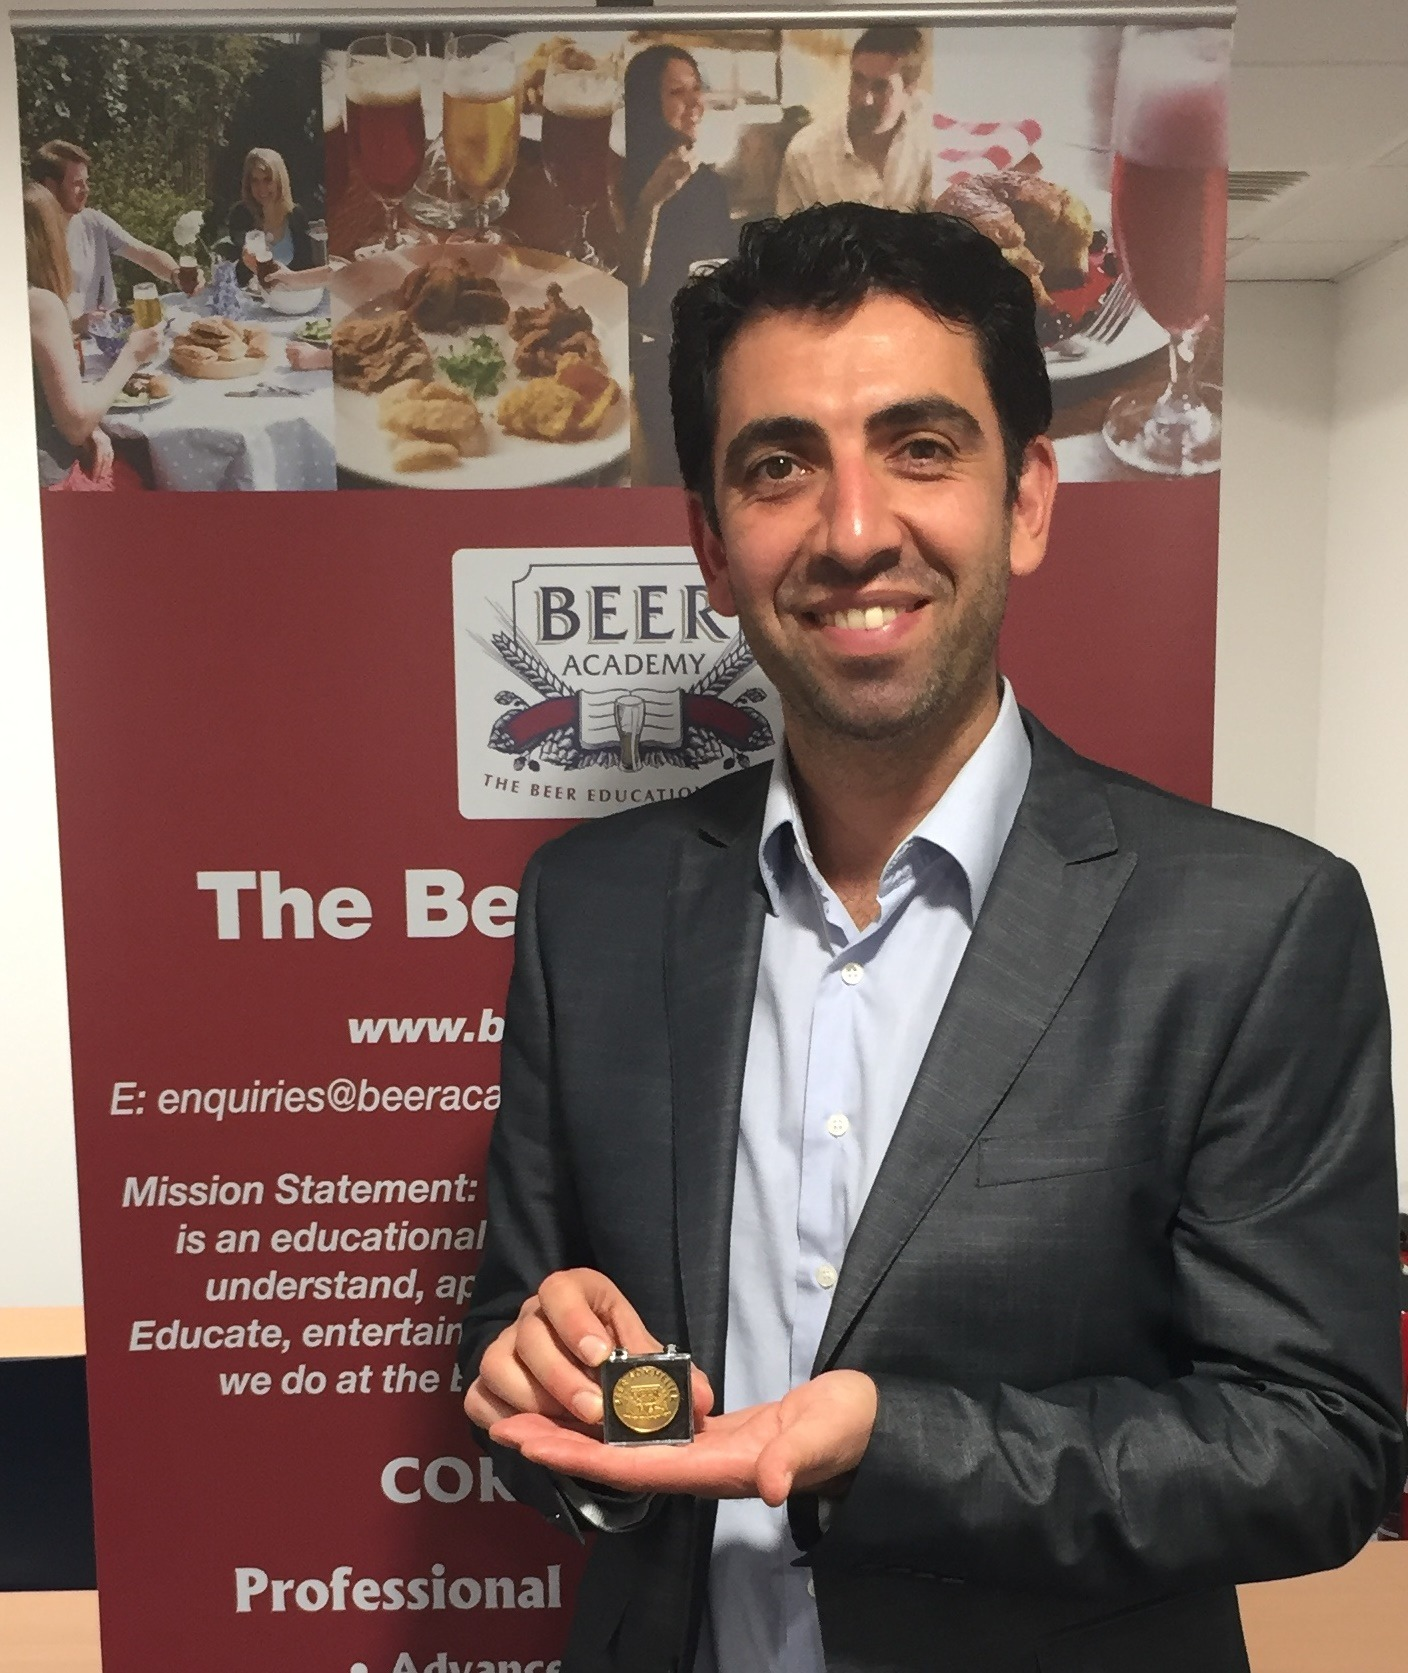 Stavros Photiou, Kent, England<br>Accredited: 20th October 2016